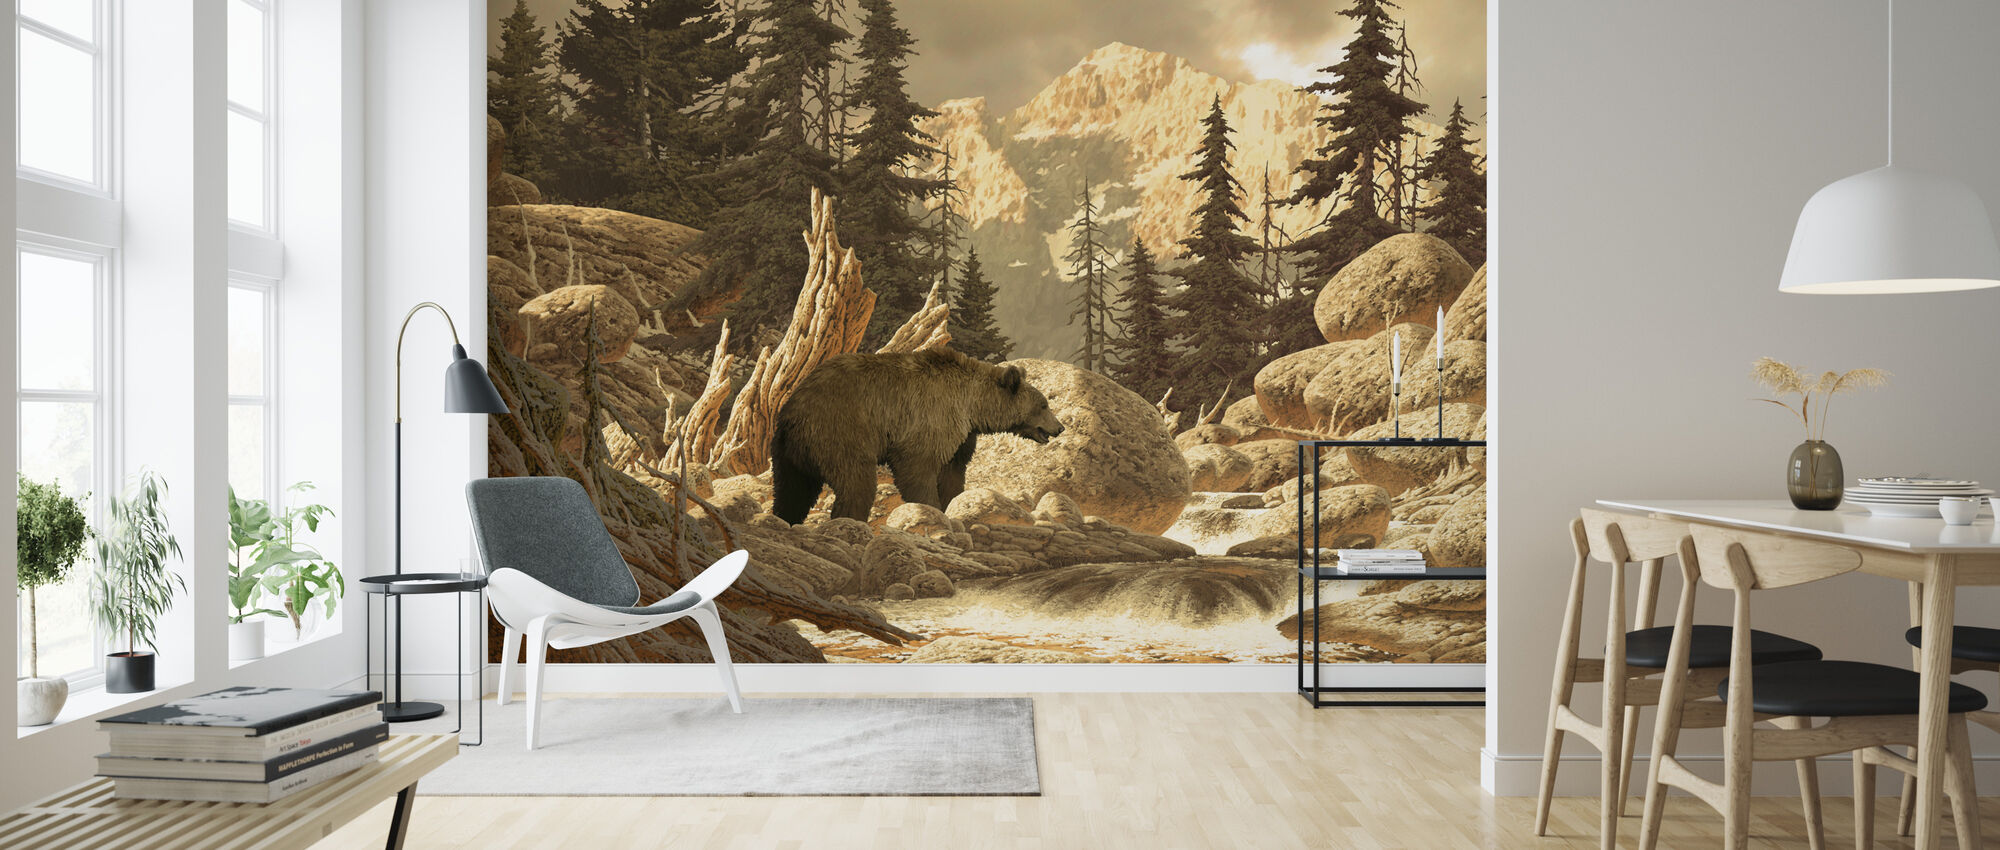 Grizzly Bear in the Tetons - Wallpaper - Living Room